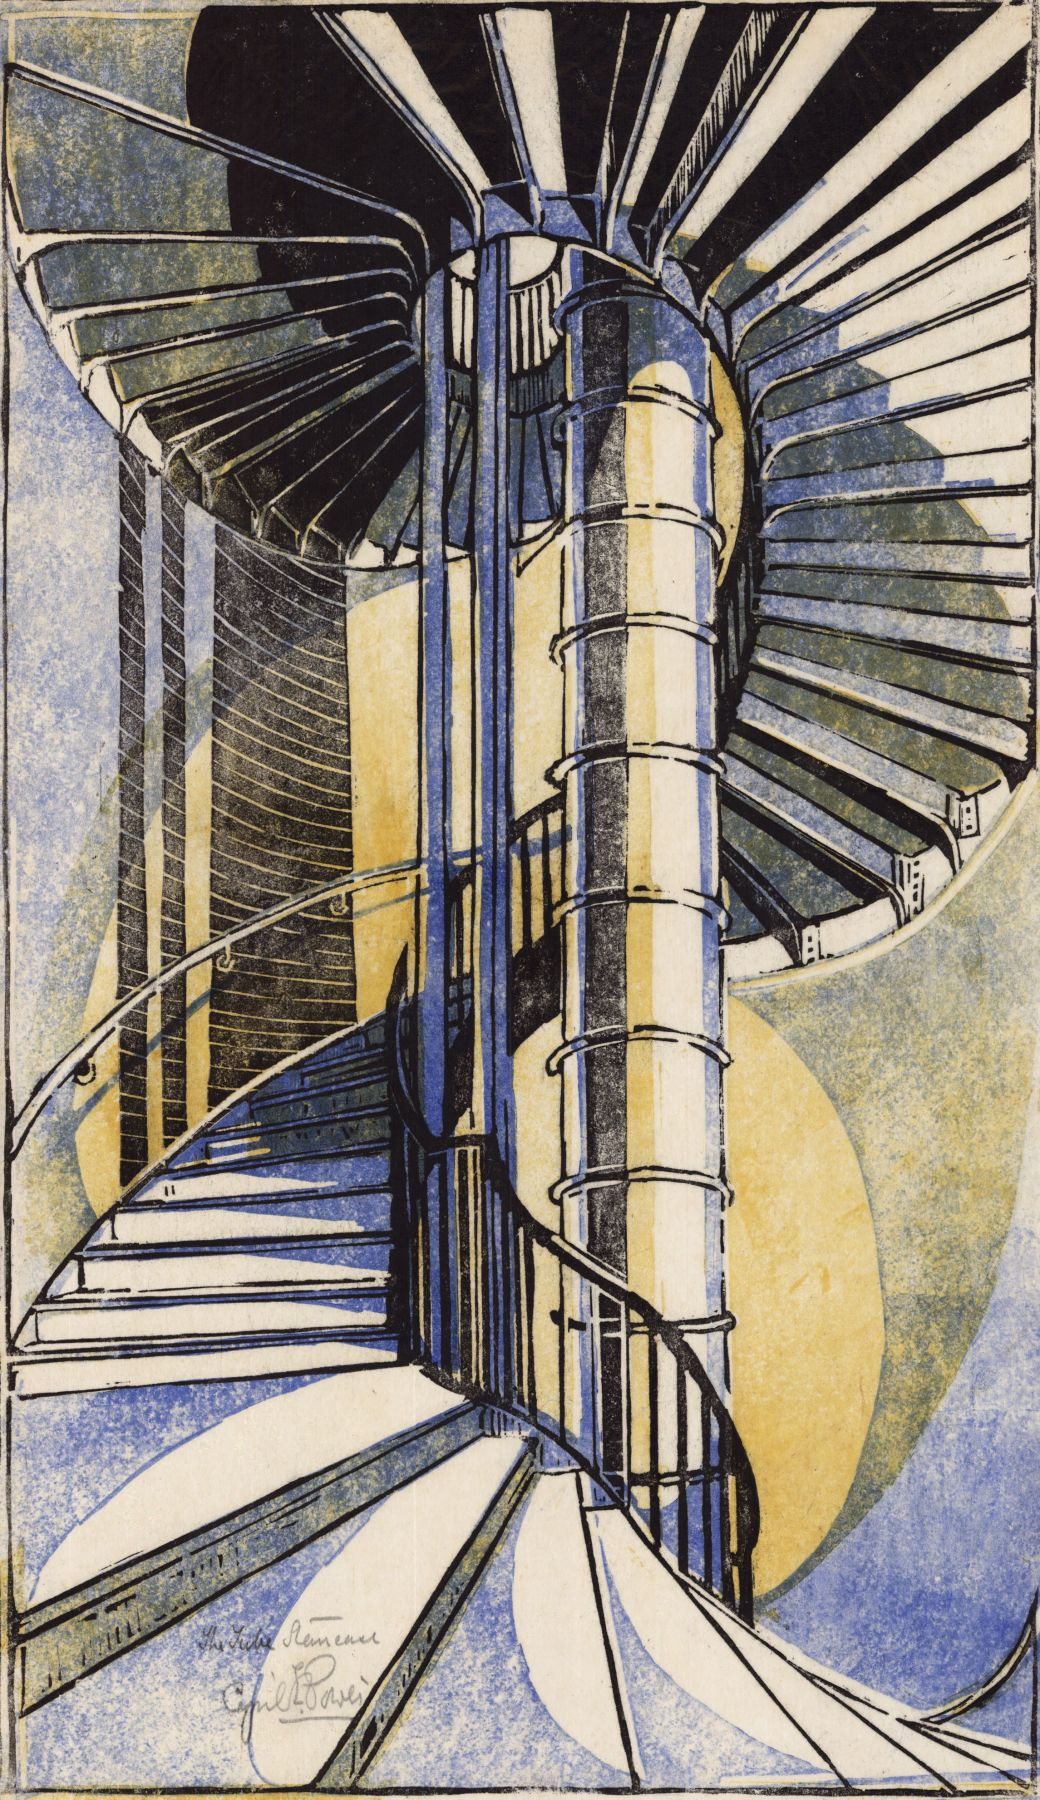 Cyril Power, The Tube Staircase, 1929.